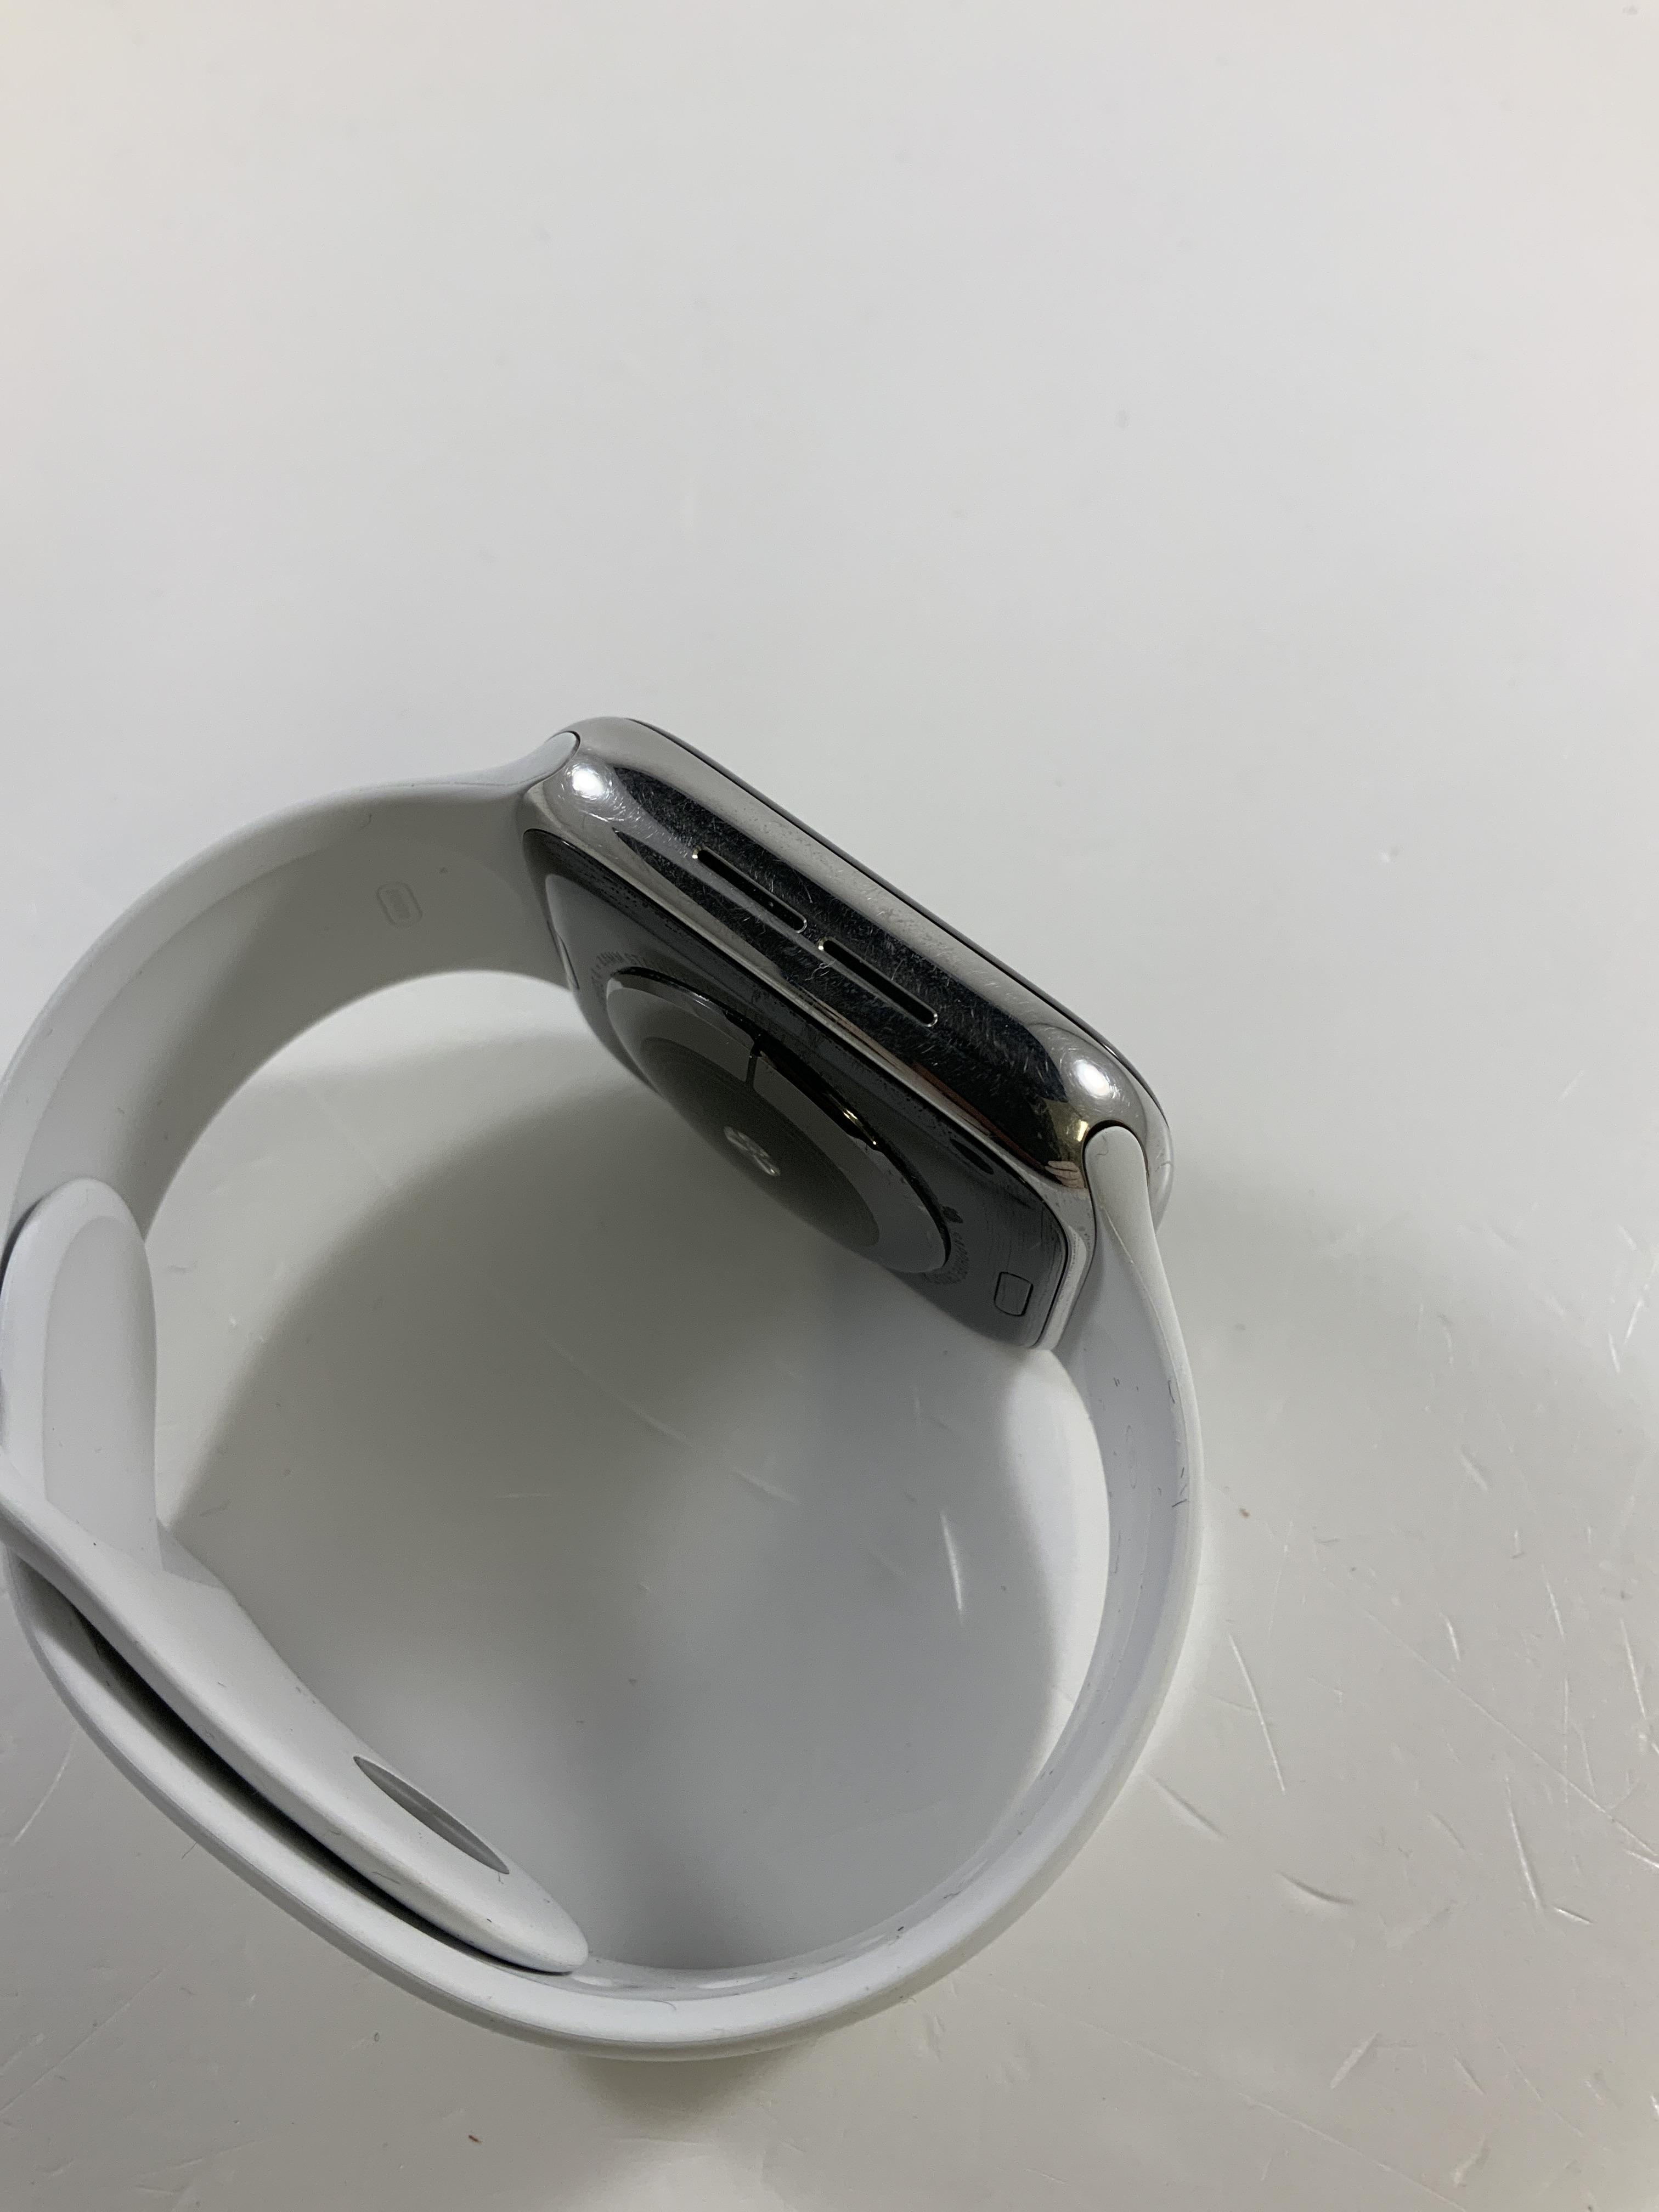 Watch Series 4 Steel Cellular (44mm), Silver, White Sport Band, Afbeelding 3